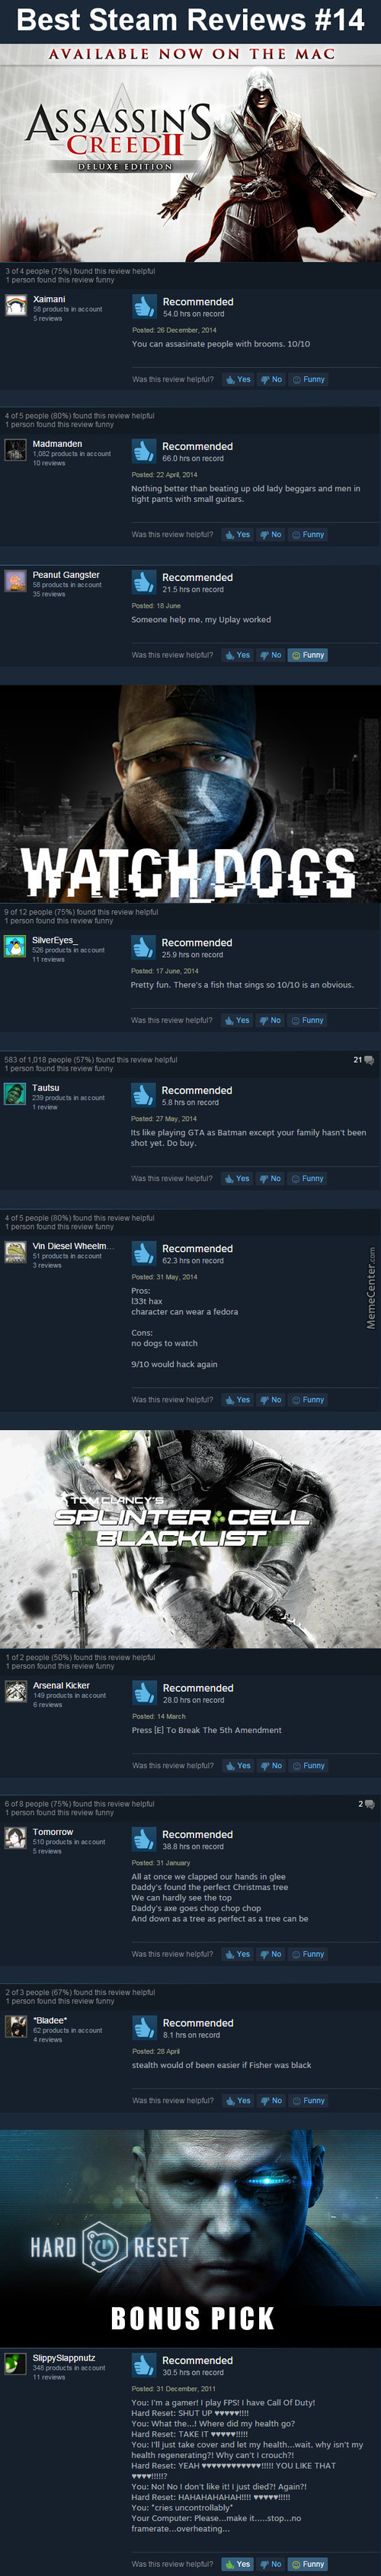 Best Steam Reviews #14 - Udon'tplay